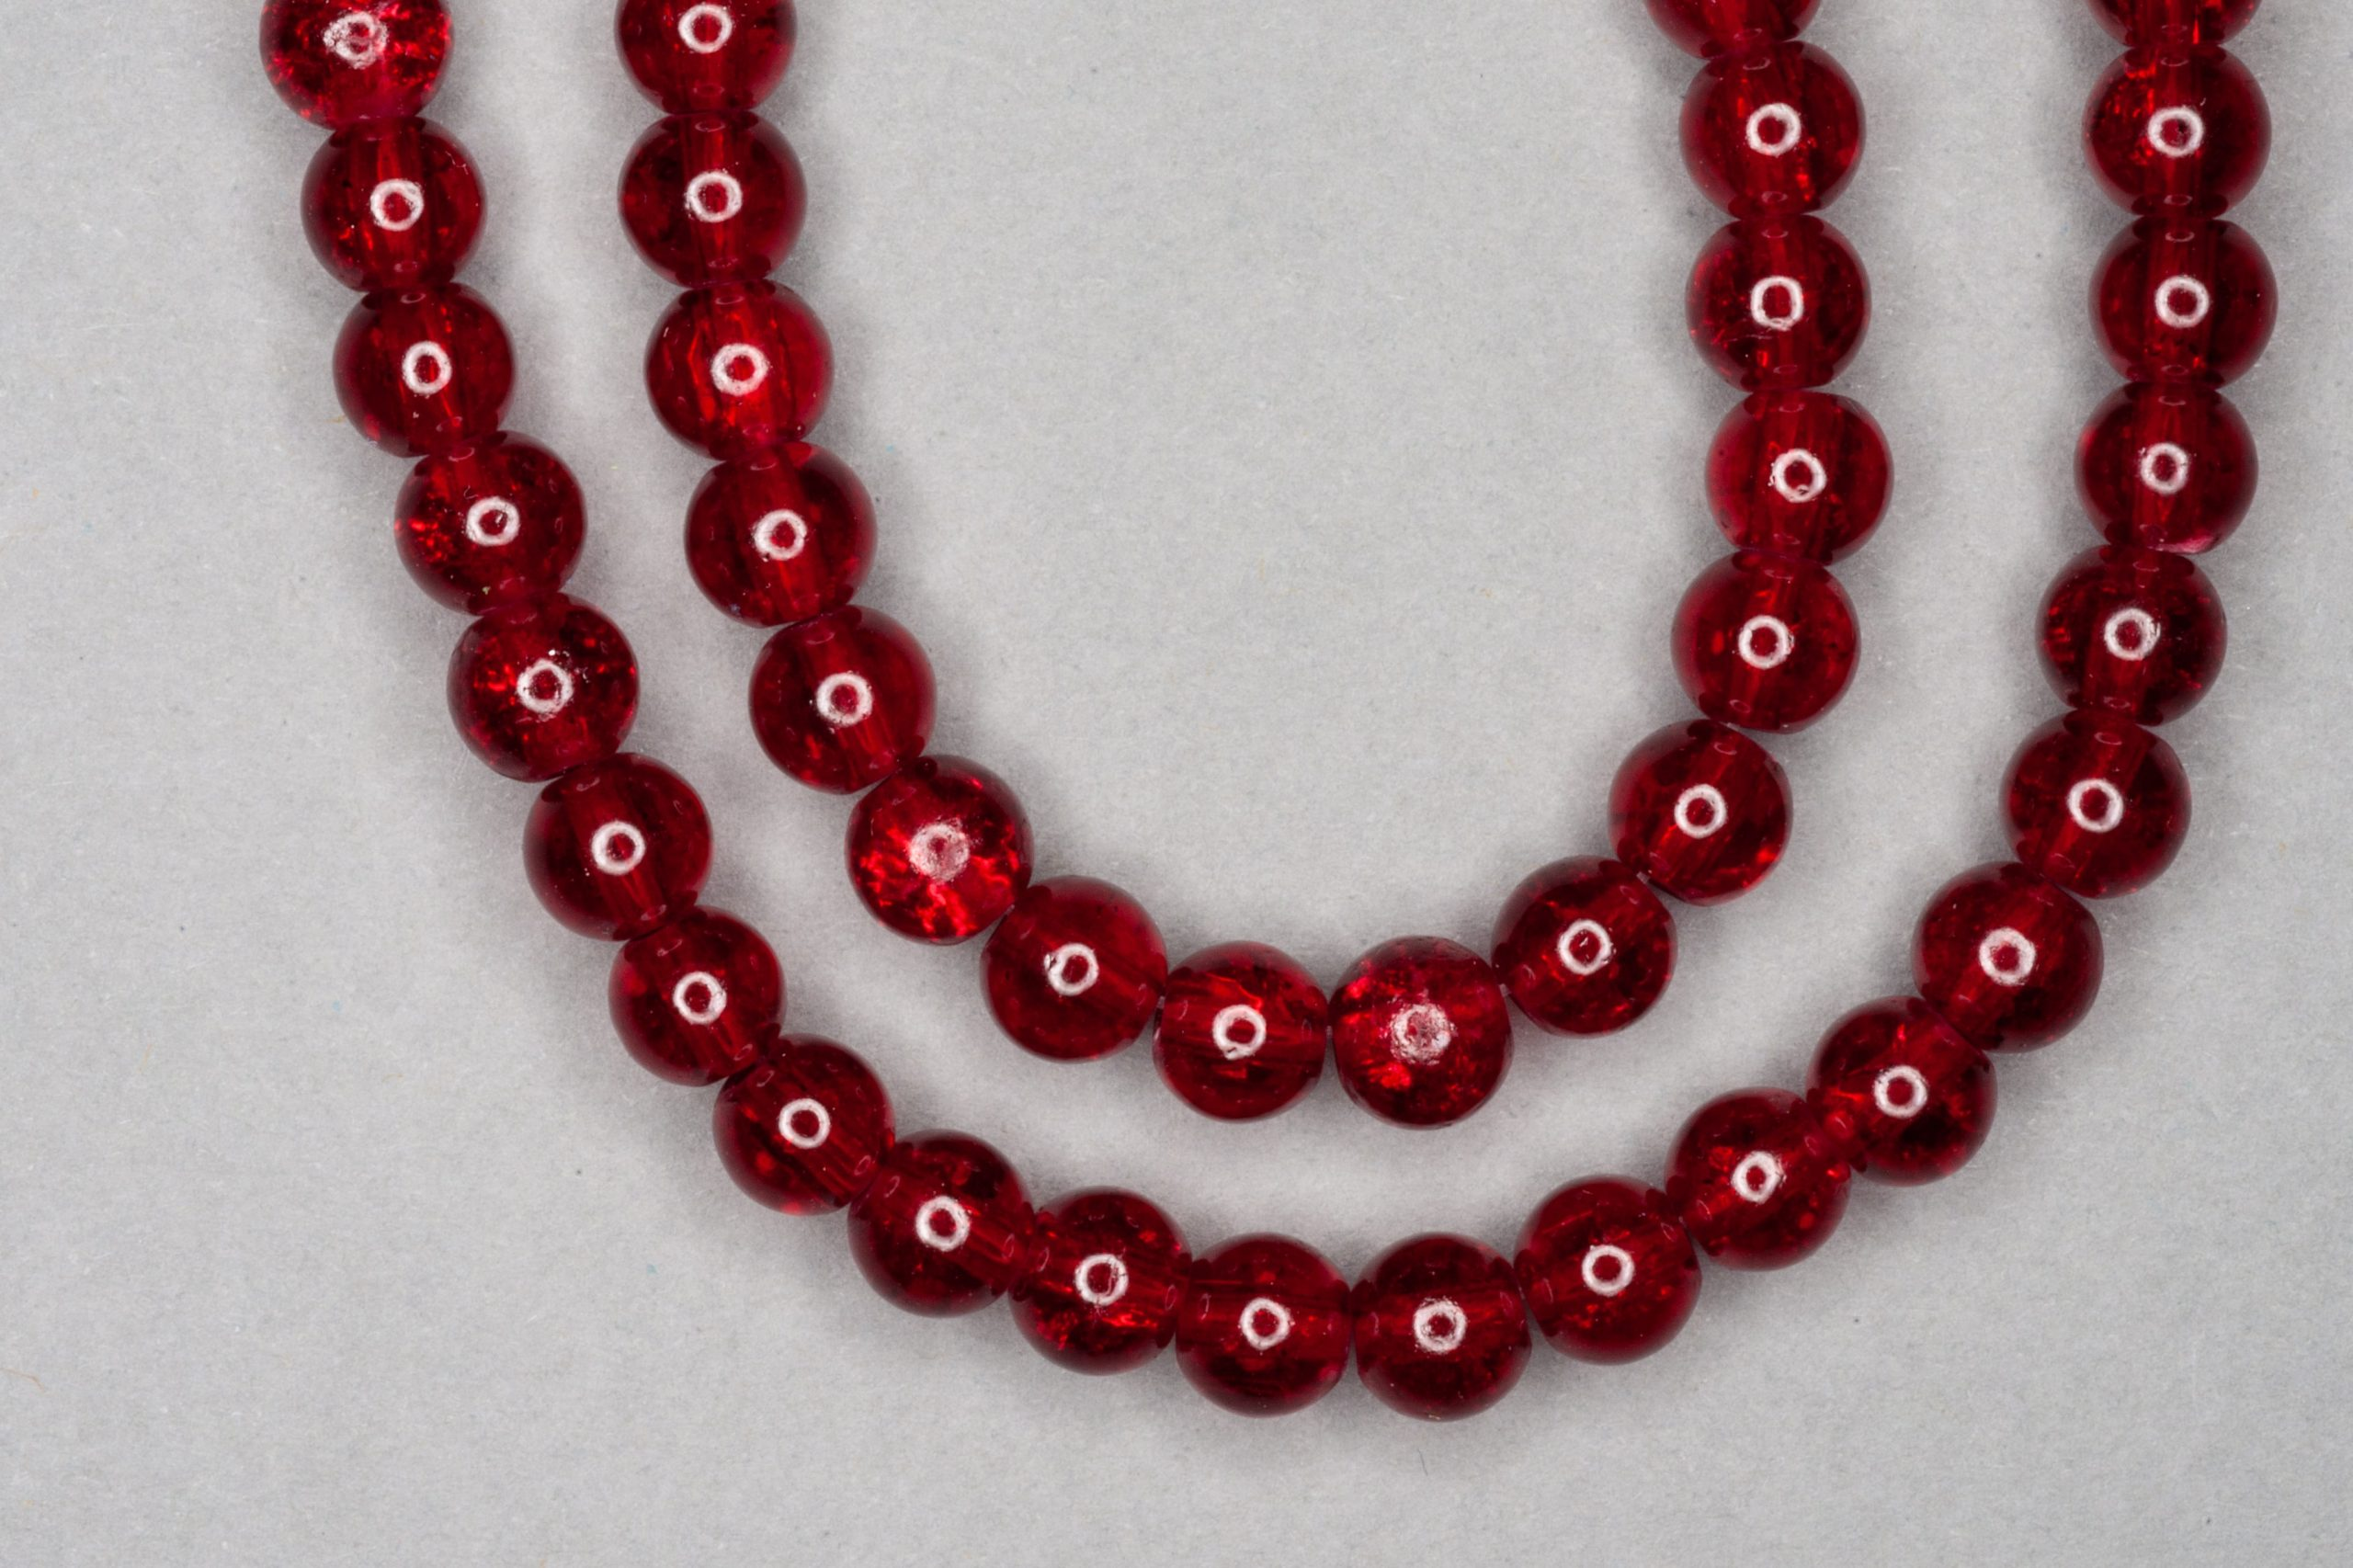 Blood Red Crackle Glass Beads